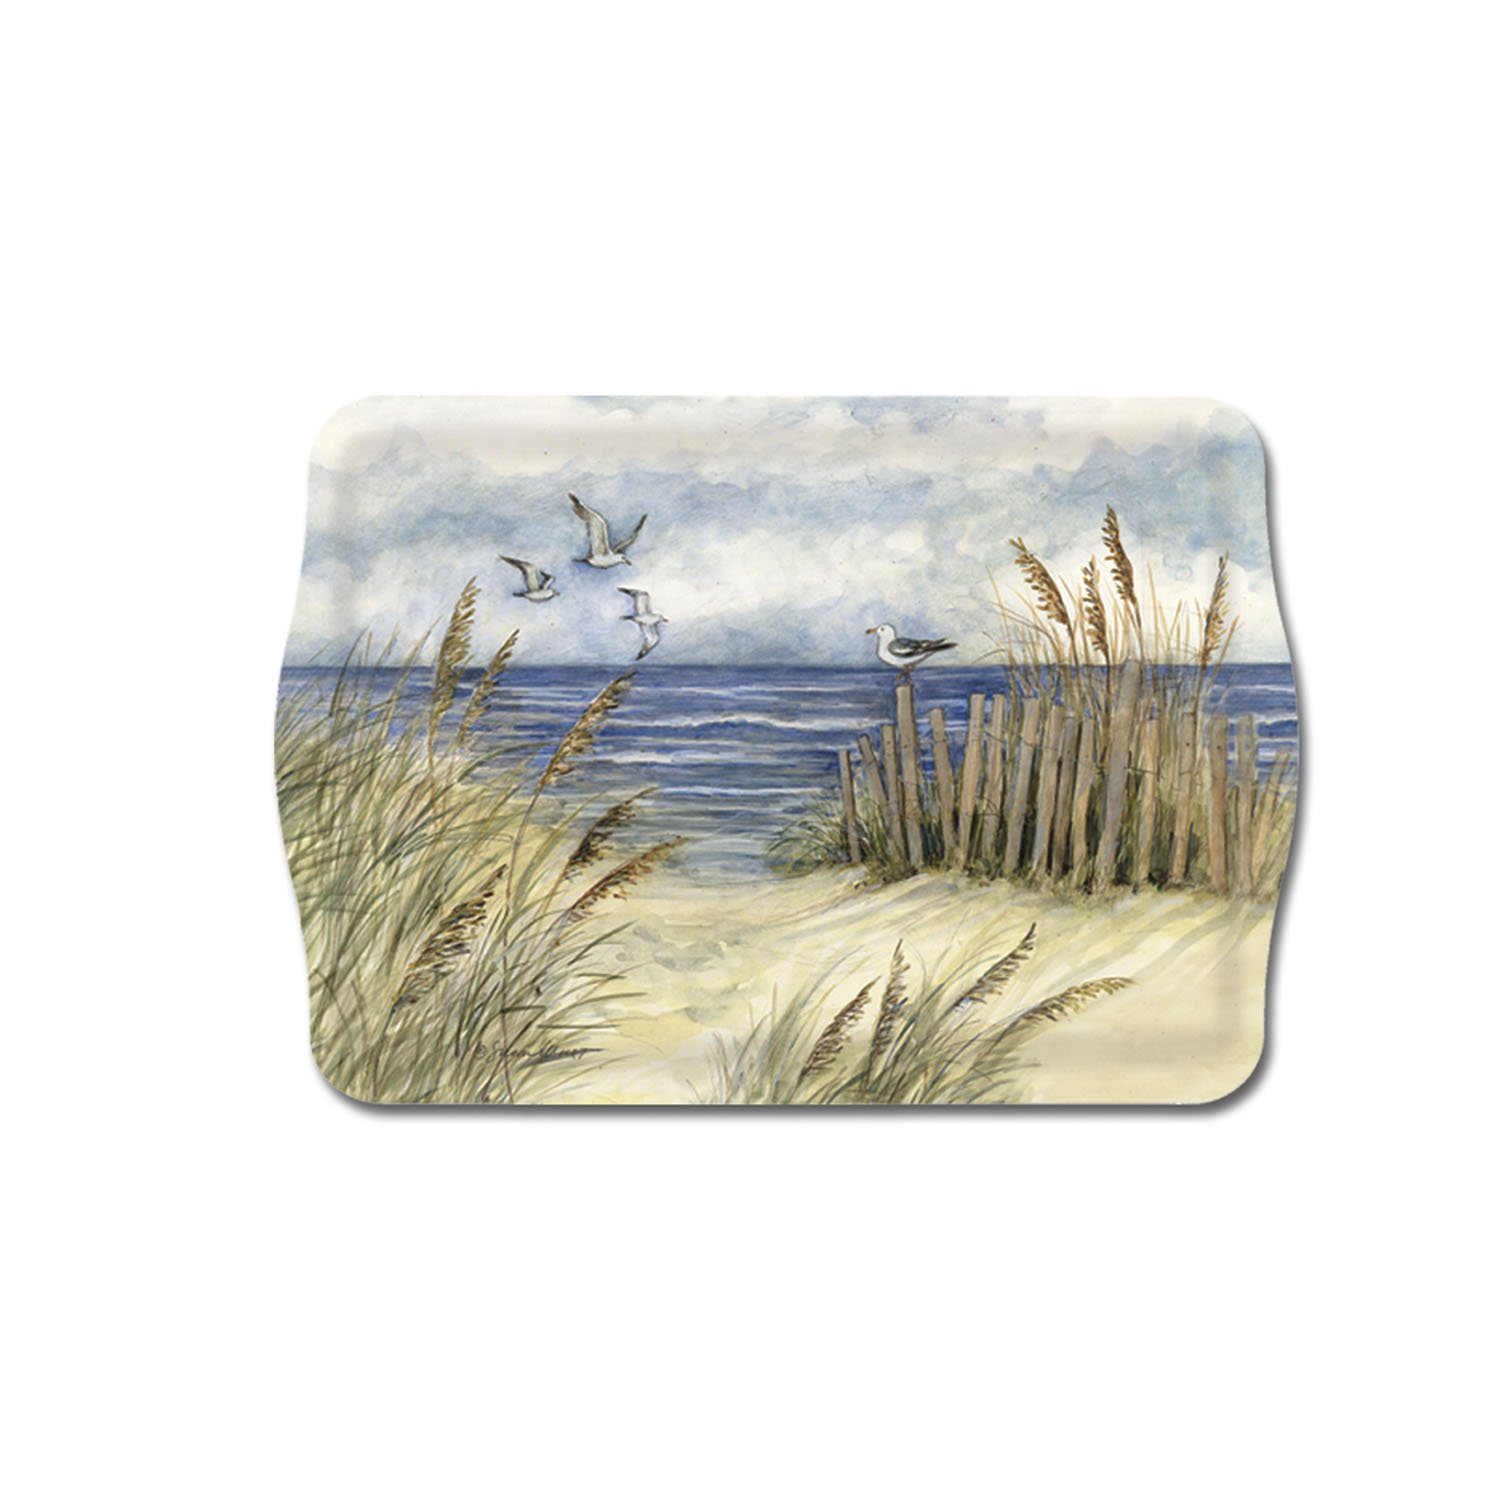 Keller-Charles By the Sea Small Tray keller